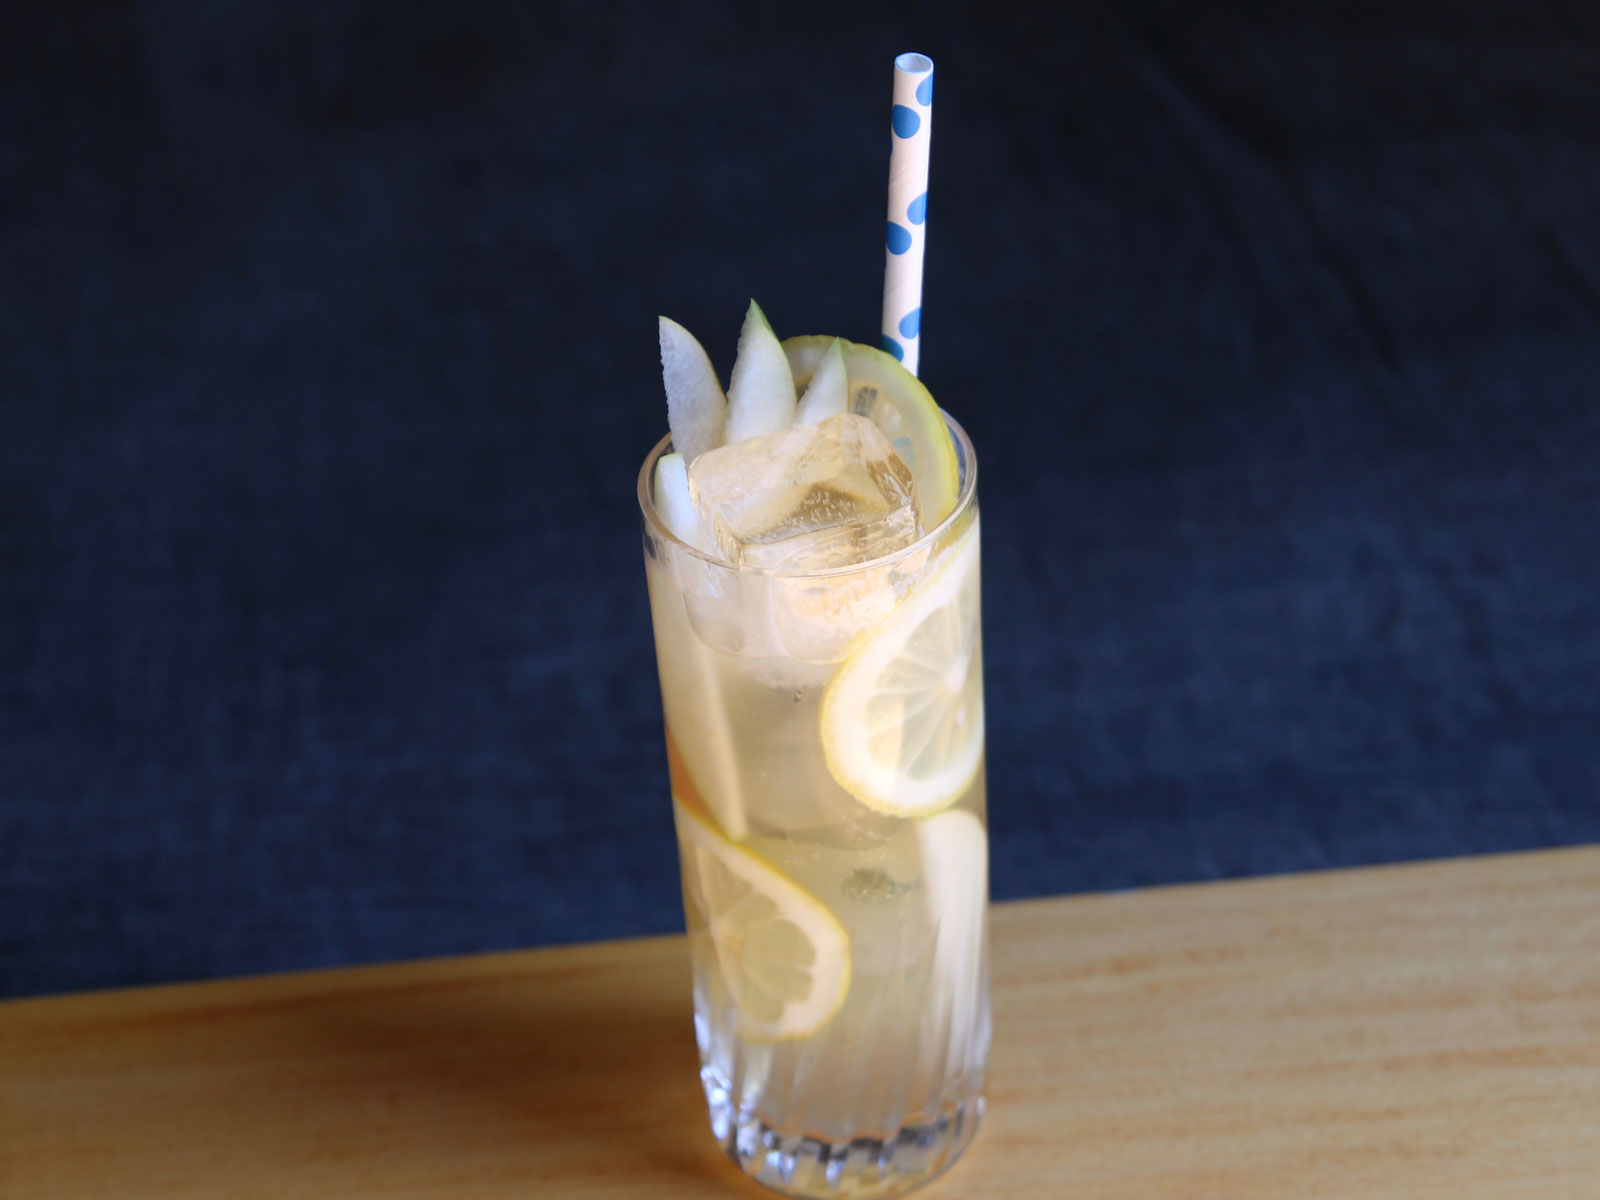 Pear and Cognac Cocktail